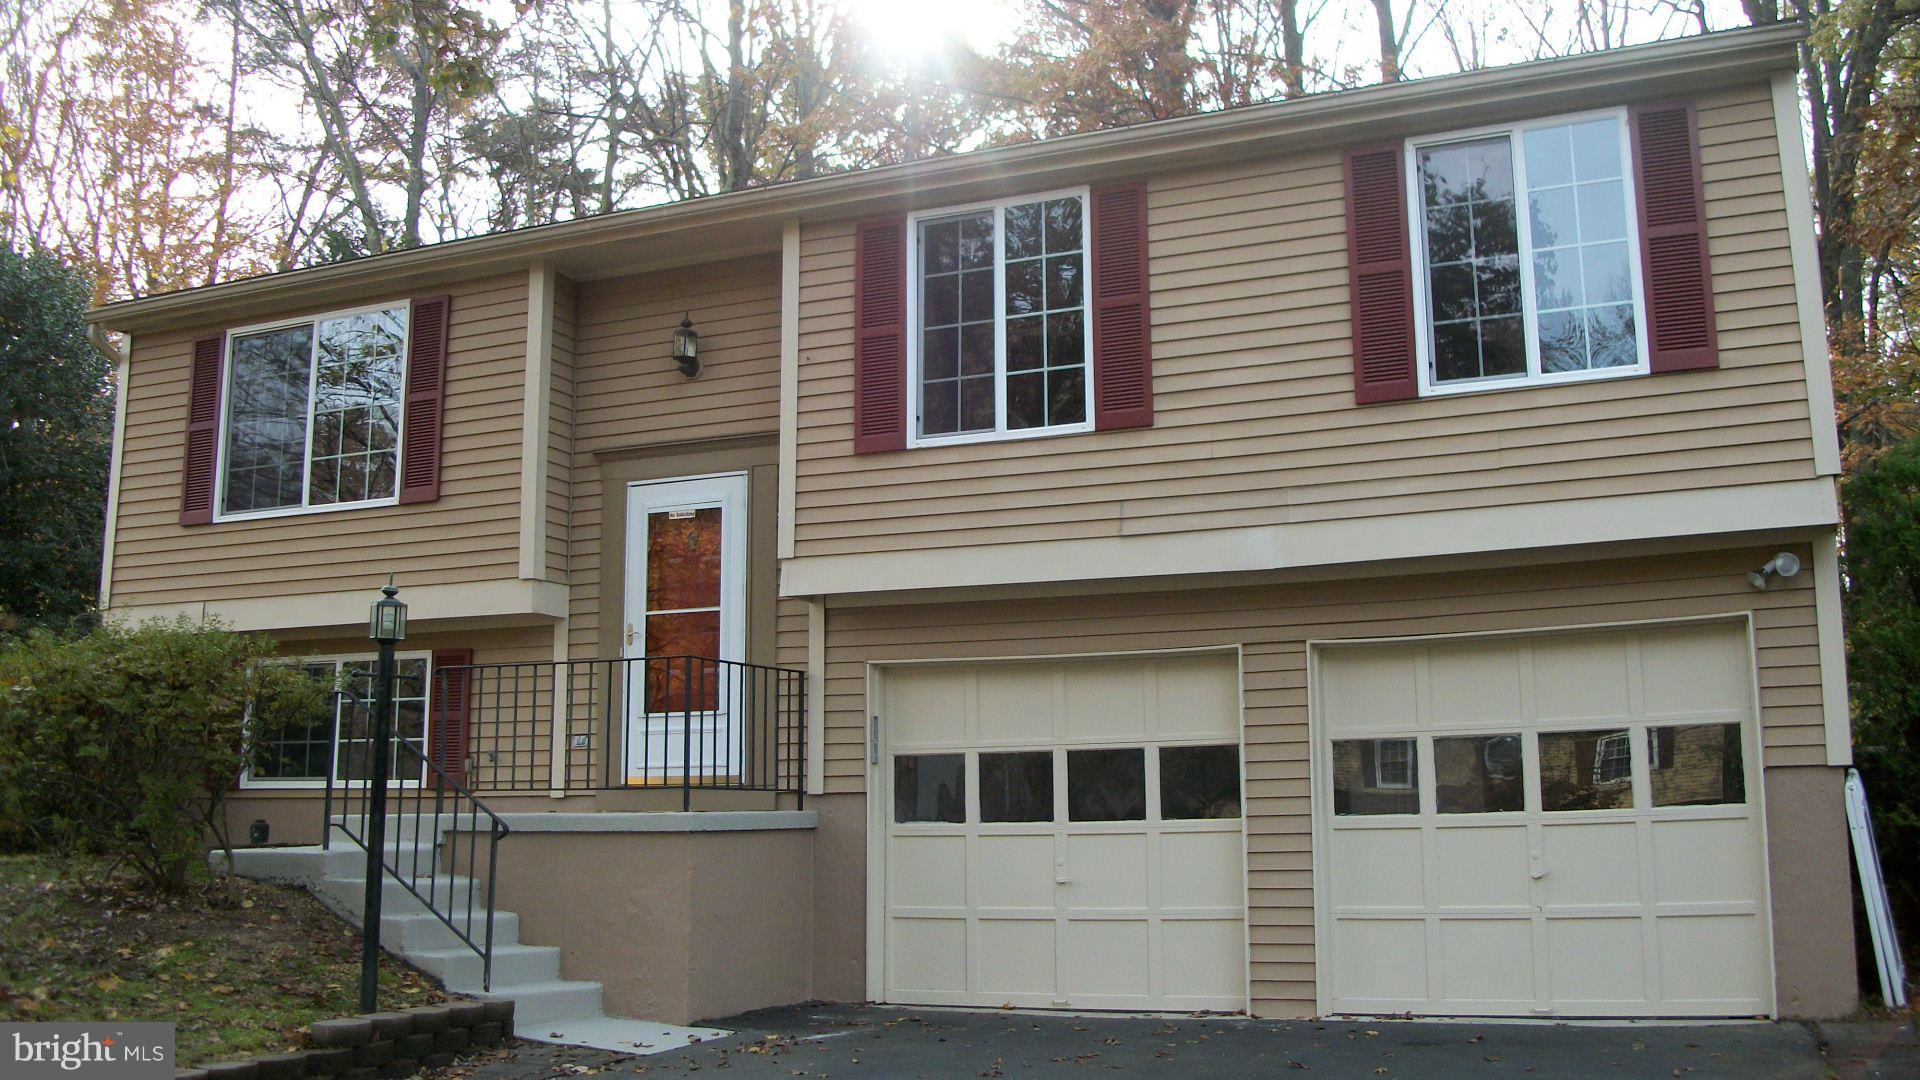 Recently Renovated house in the GREAT Newport Neighborhood,  NEW Hardwood Floors on Main. NEW Kitchen. 2 Car Garage. Walk to Leesylvania Elementary. Located next to Julie Metz Wetlands Park and Preserve with walking trails and over the water Boardwalk.  Leesylvania State park practically next door with Picnic, Trails, Fishing, Boating and so much more.  Ferlazzo County Center, Eastern PWC Police District office 2 miles away.  POTOMAC MILLS and STONEBRIDGE with WEGMANS less than 2 miles away.  Commuter Train (VRE) Rippon Station and RT 95 Exits and RT 1 are just moments away.  Located mid way between Quantico Marine Base and Fort Belvoir Army Post.  Federal Contractors located 25 minutes away!   This is one GREAT LOCATION and a house to match at a price you can afford.  Own it for less than rent!  Go see it TODAY!